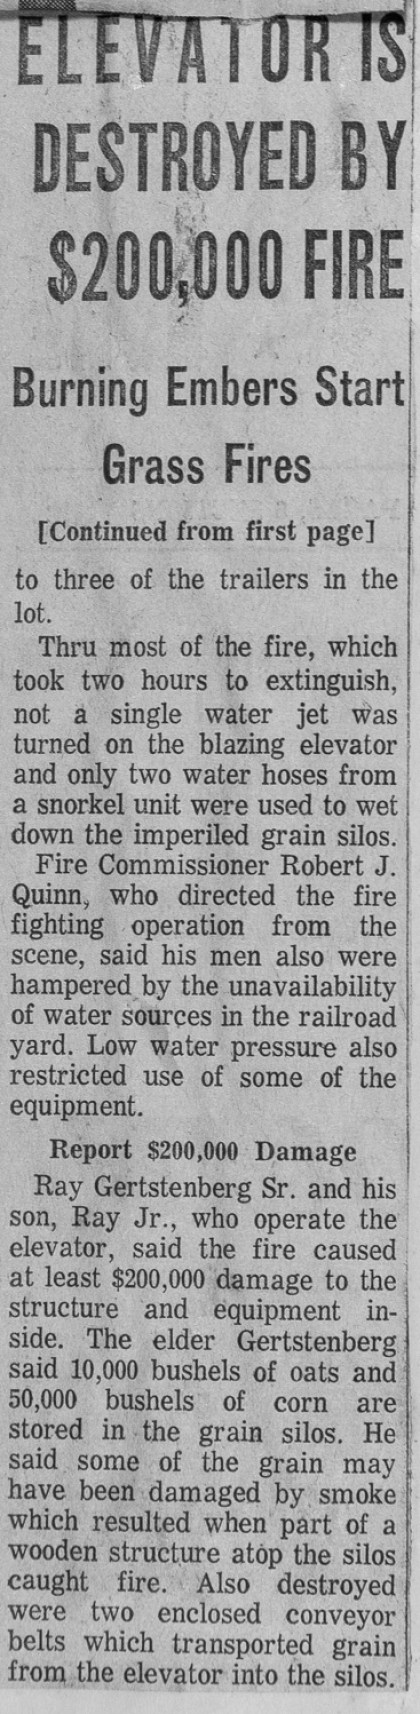 News clipping from an historic fire that destroyed a grain elevator in Chicago